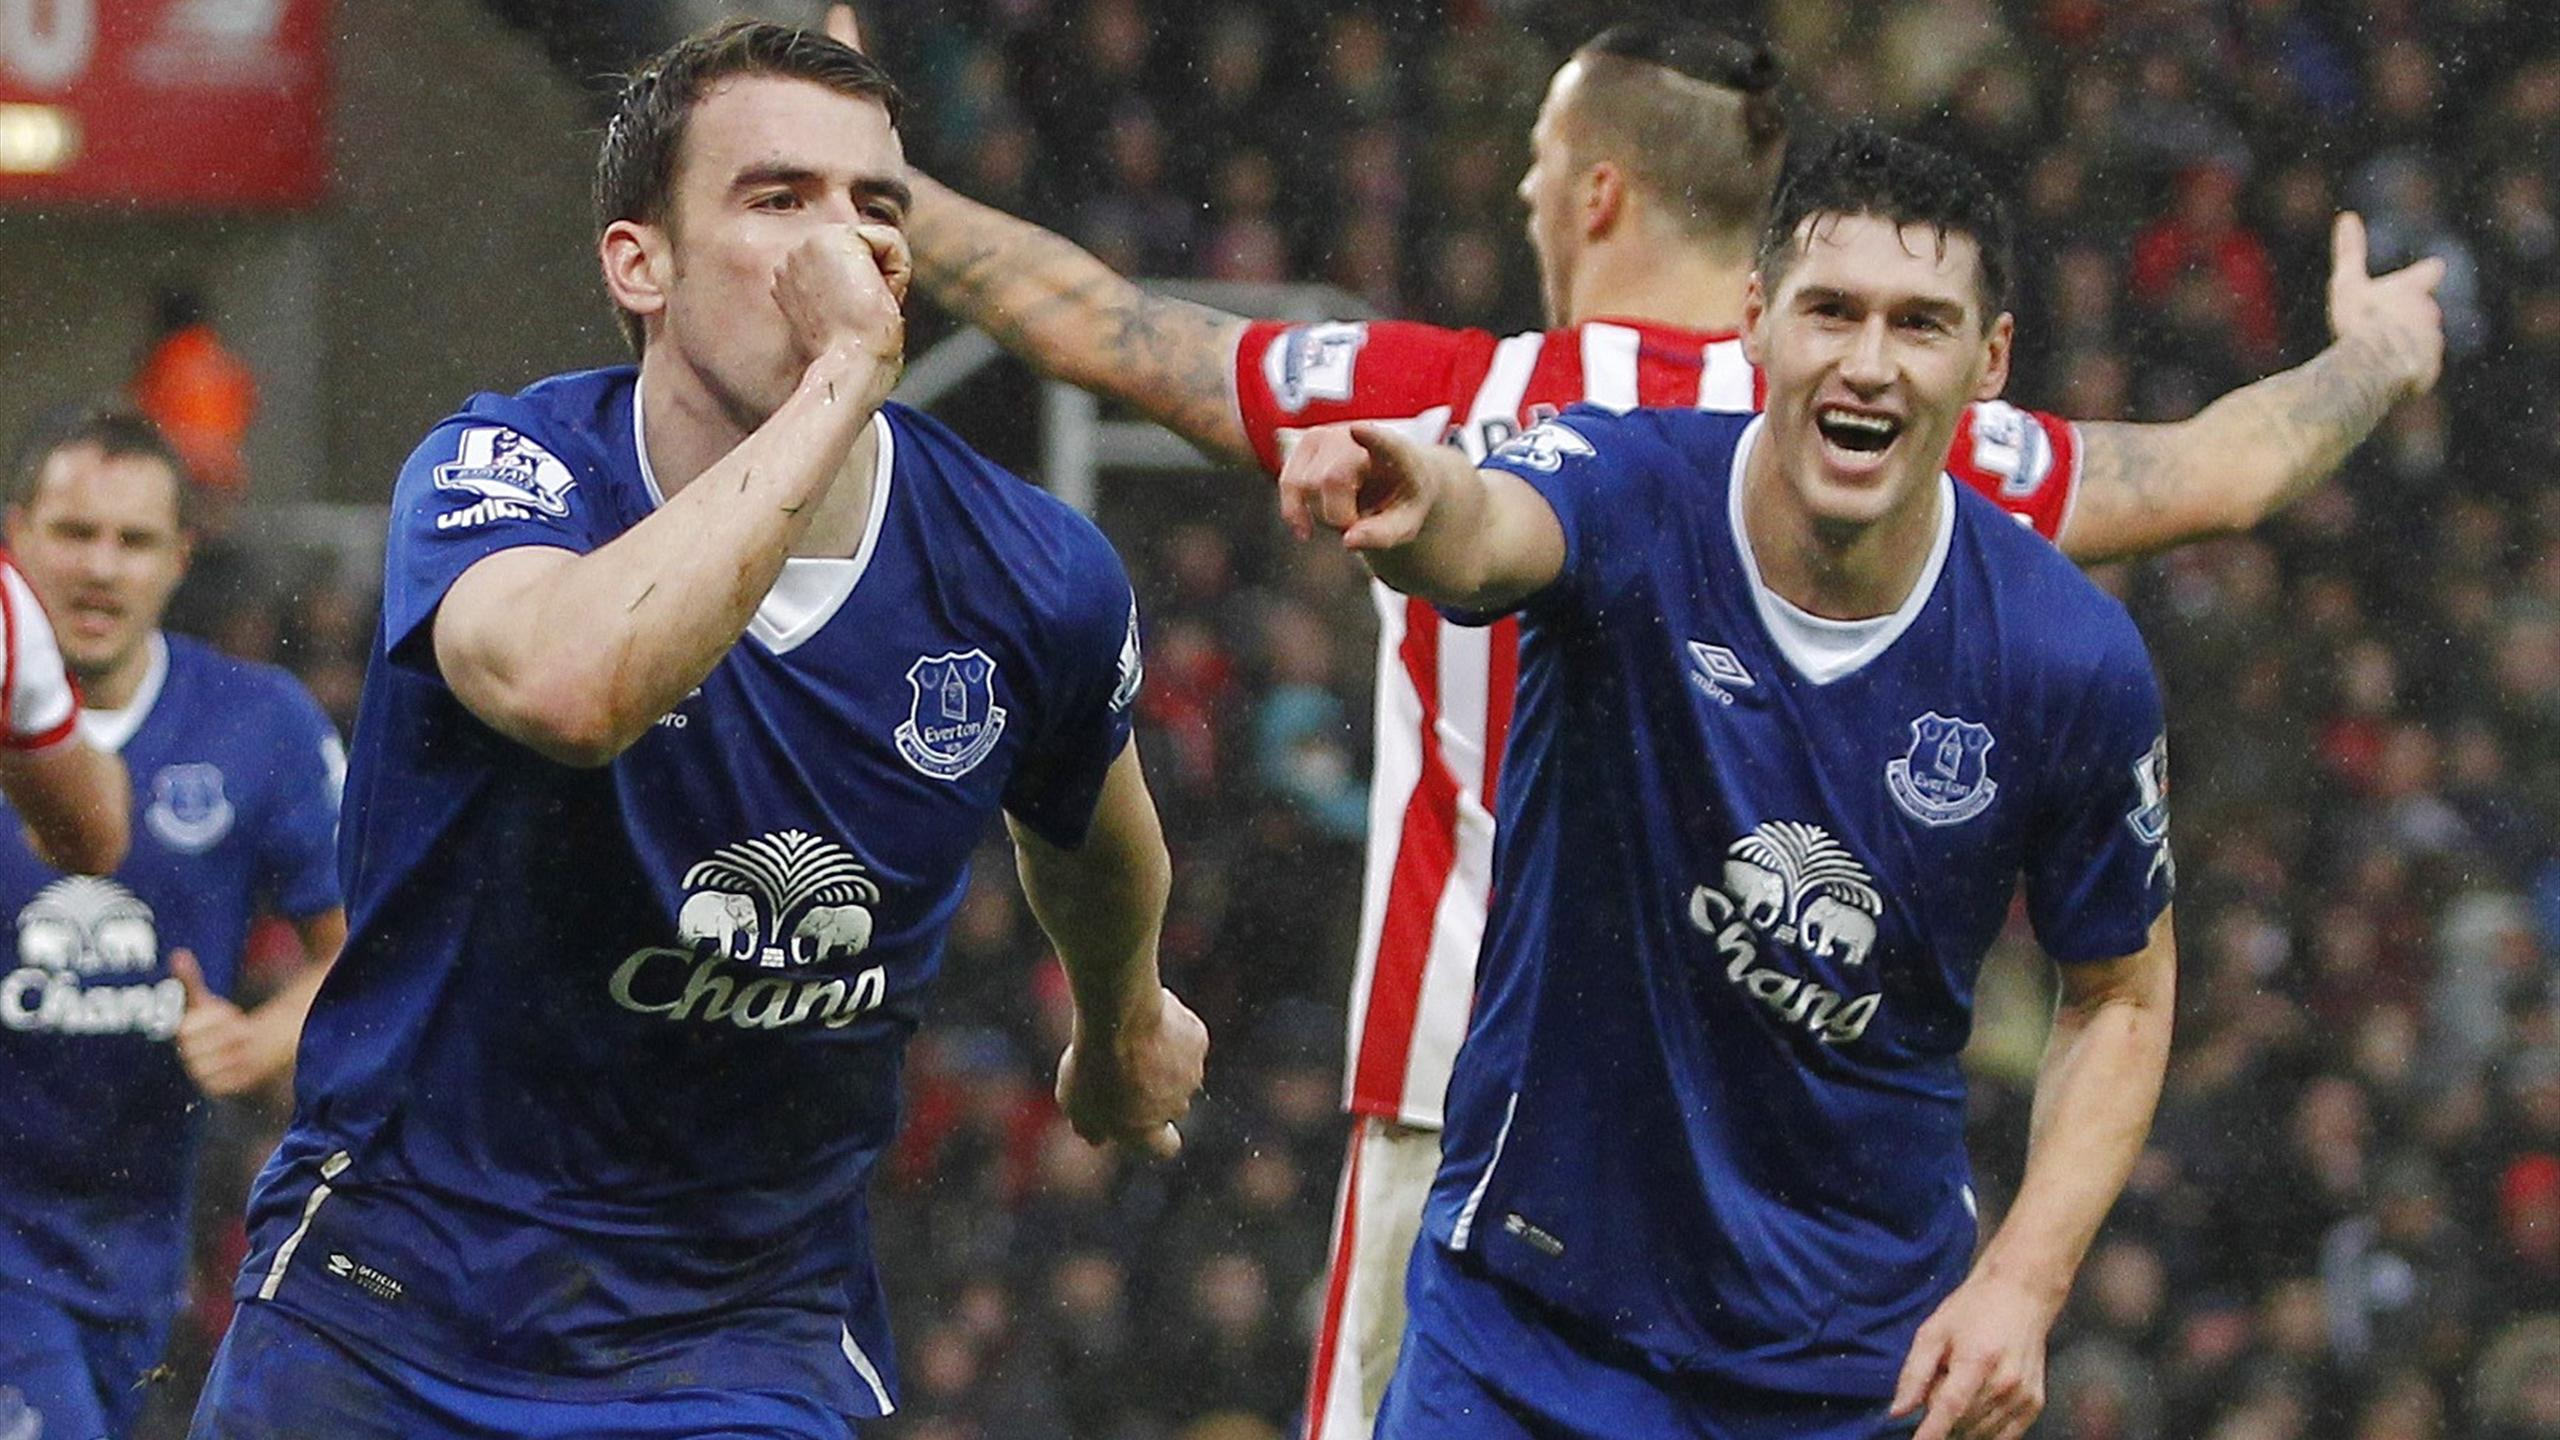 Everton's Seamus Coleman celebrates with Gareth Barry after scoring against Stoke